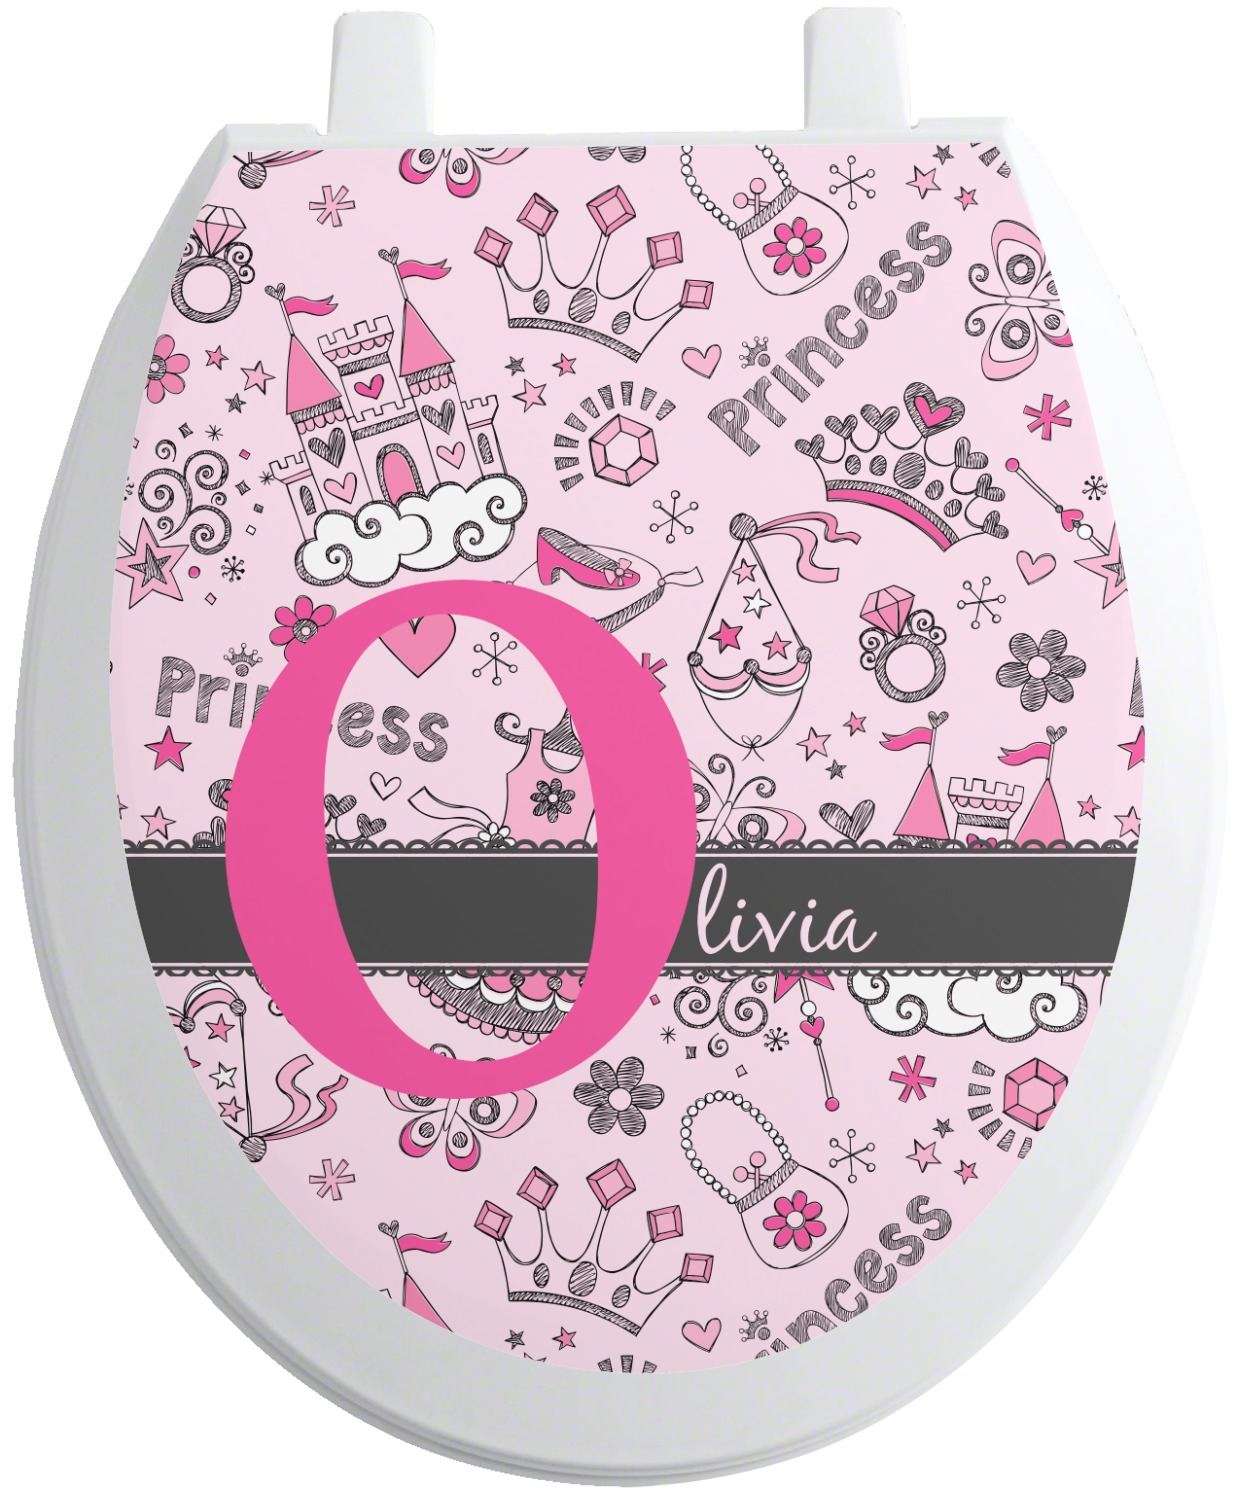 princess toilet seat decal  personalized